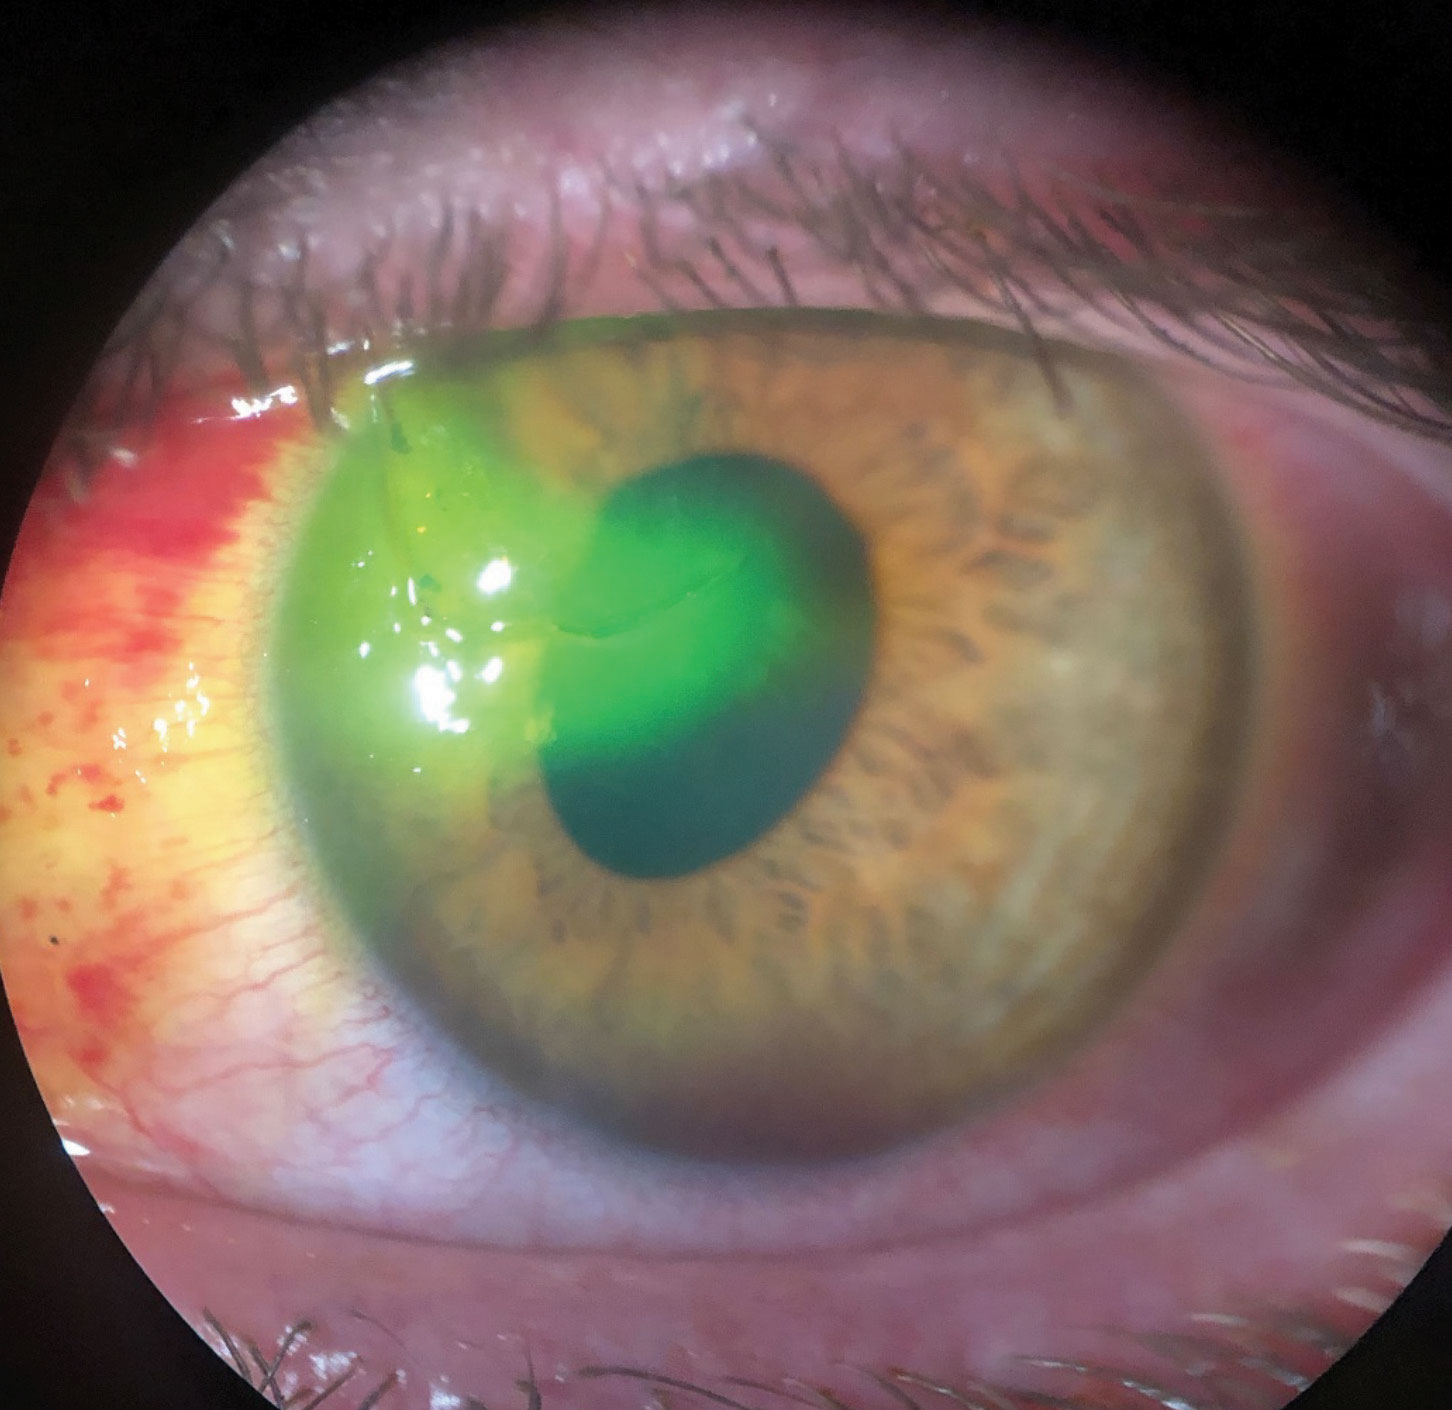 This patient suffered a traumatic corneal laceration after a mishap with a screwdriver. Note the sodium fluorescein being pulled into the stroma and the oblong pupil.